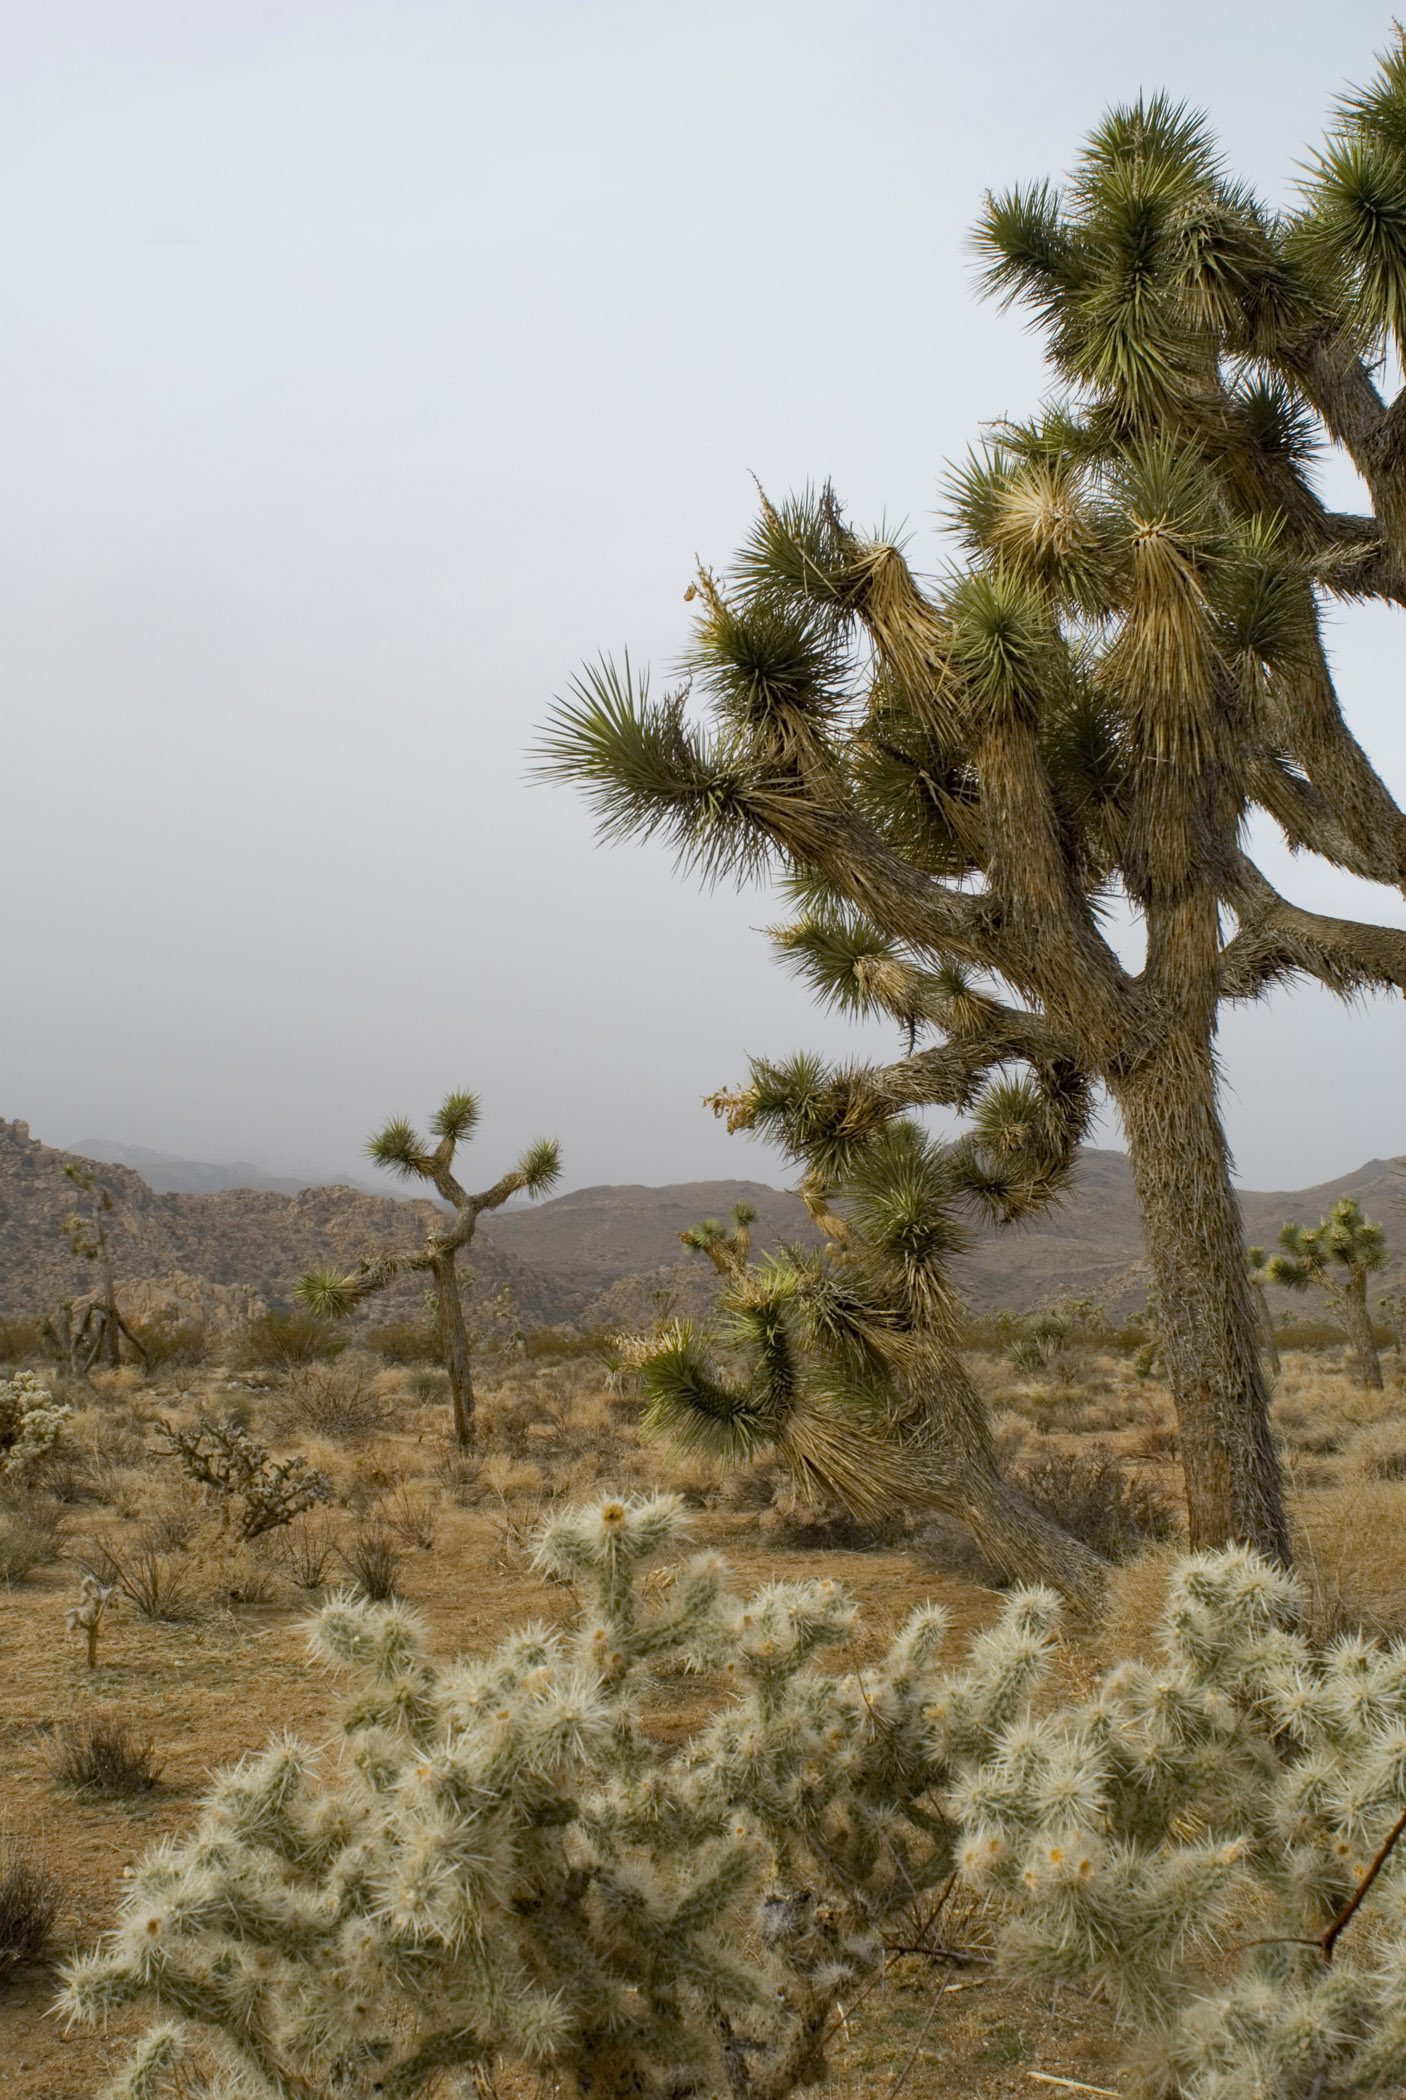 Trees and Landscape with Overcast Sky in Joshus Tree National Park, California, USA